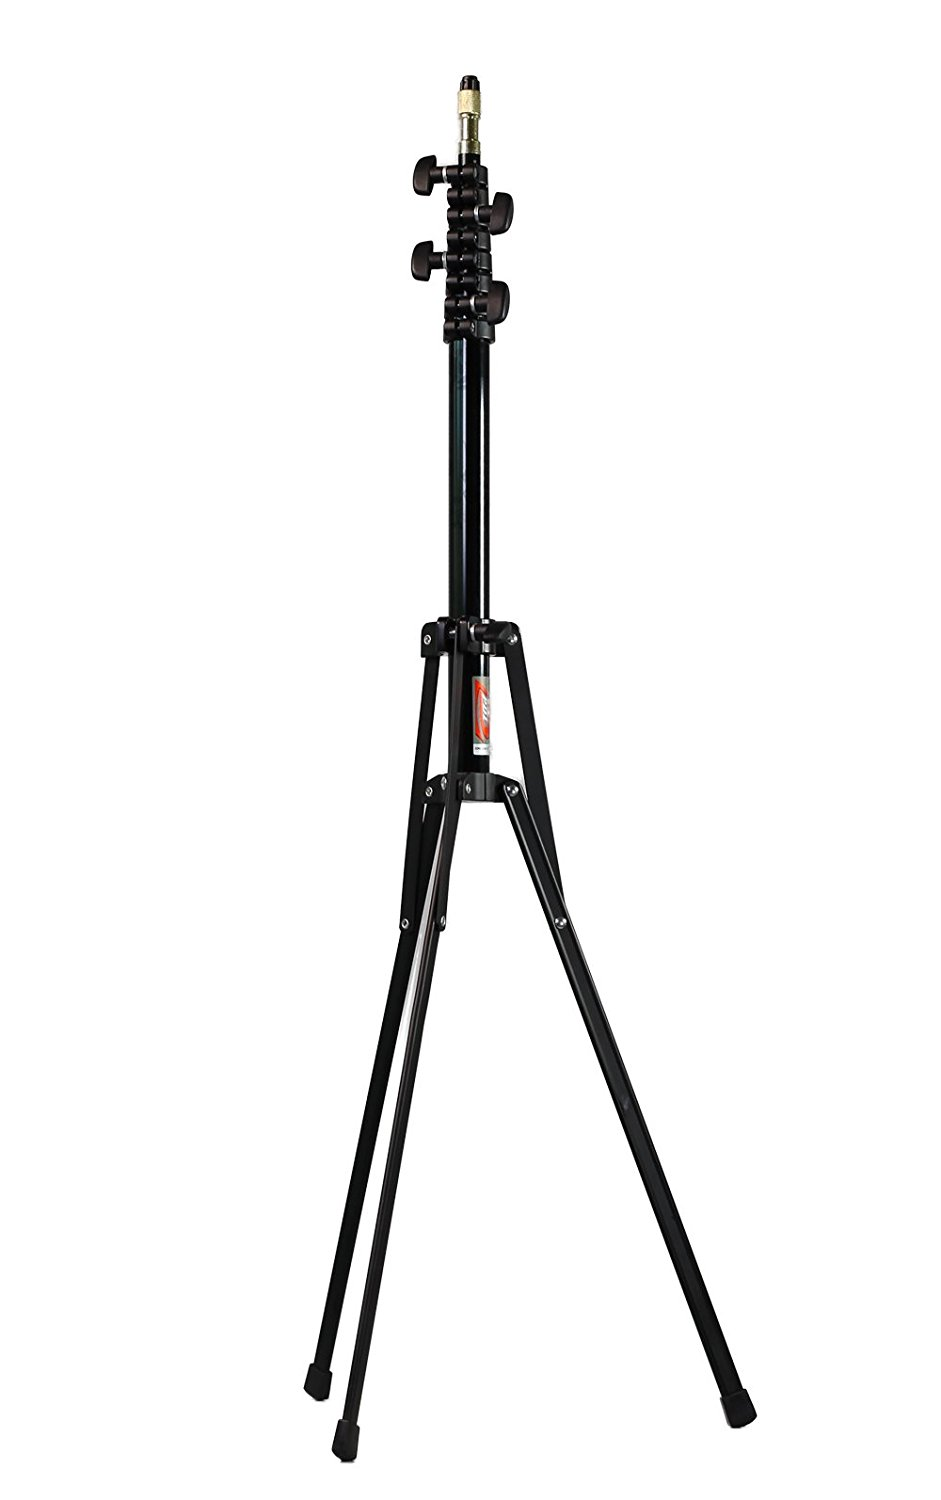 nomis-compact-travel-light-stand-1